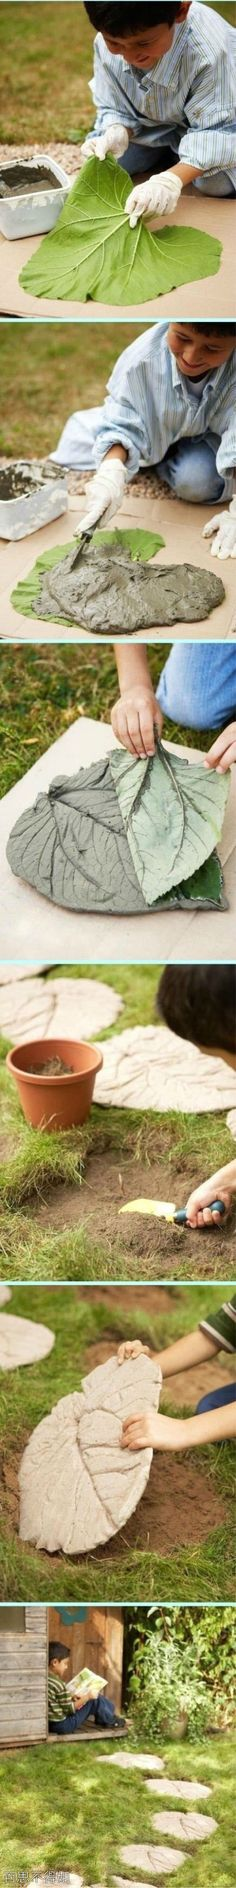 Make a fun, leaf-inspired garden path with this step-by-step guide for making stepping stones.